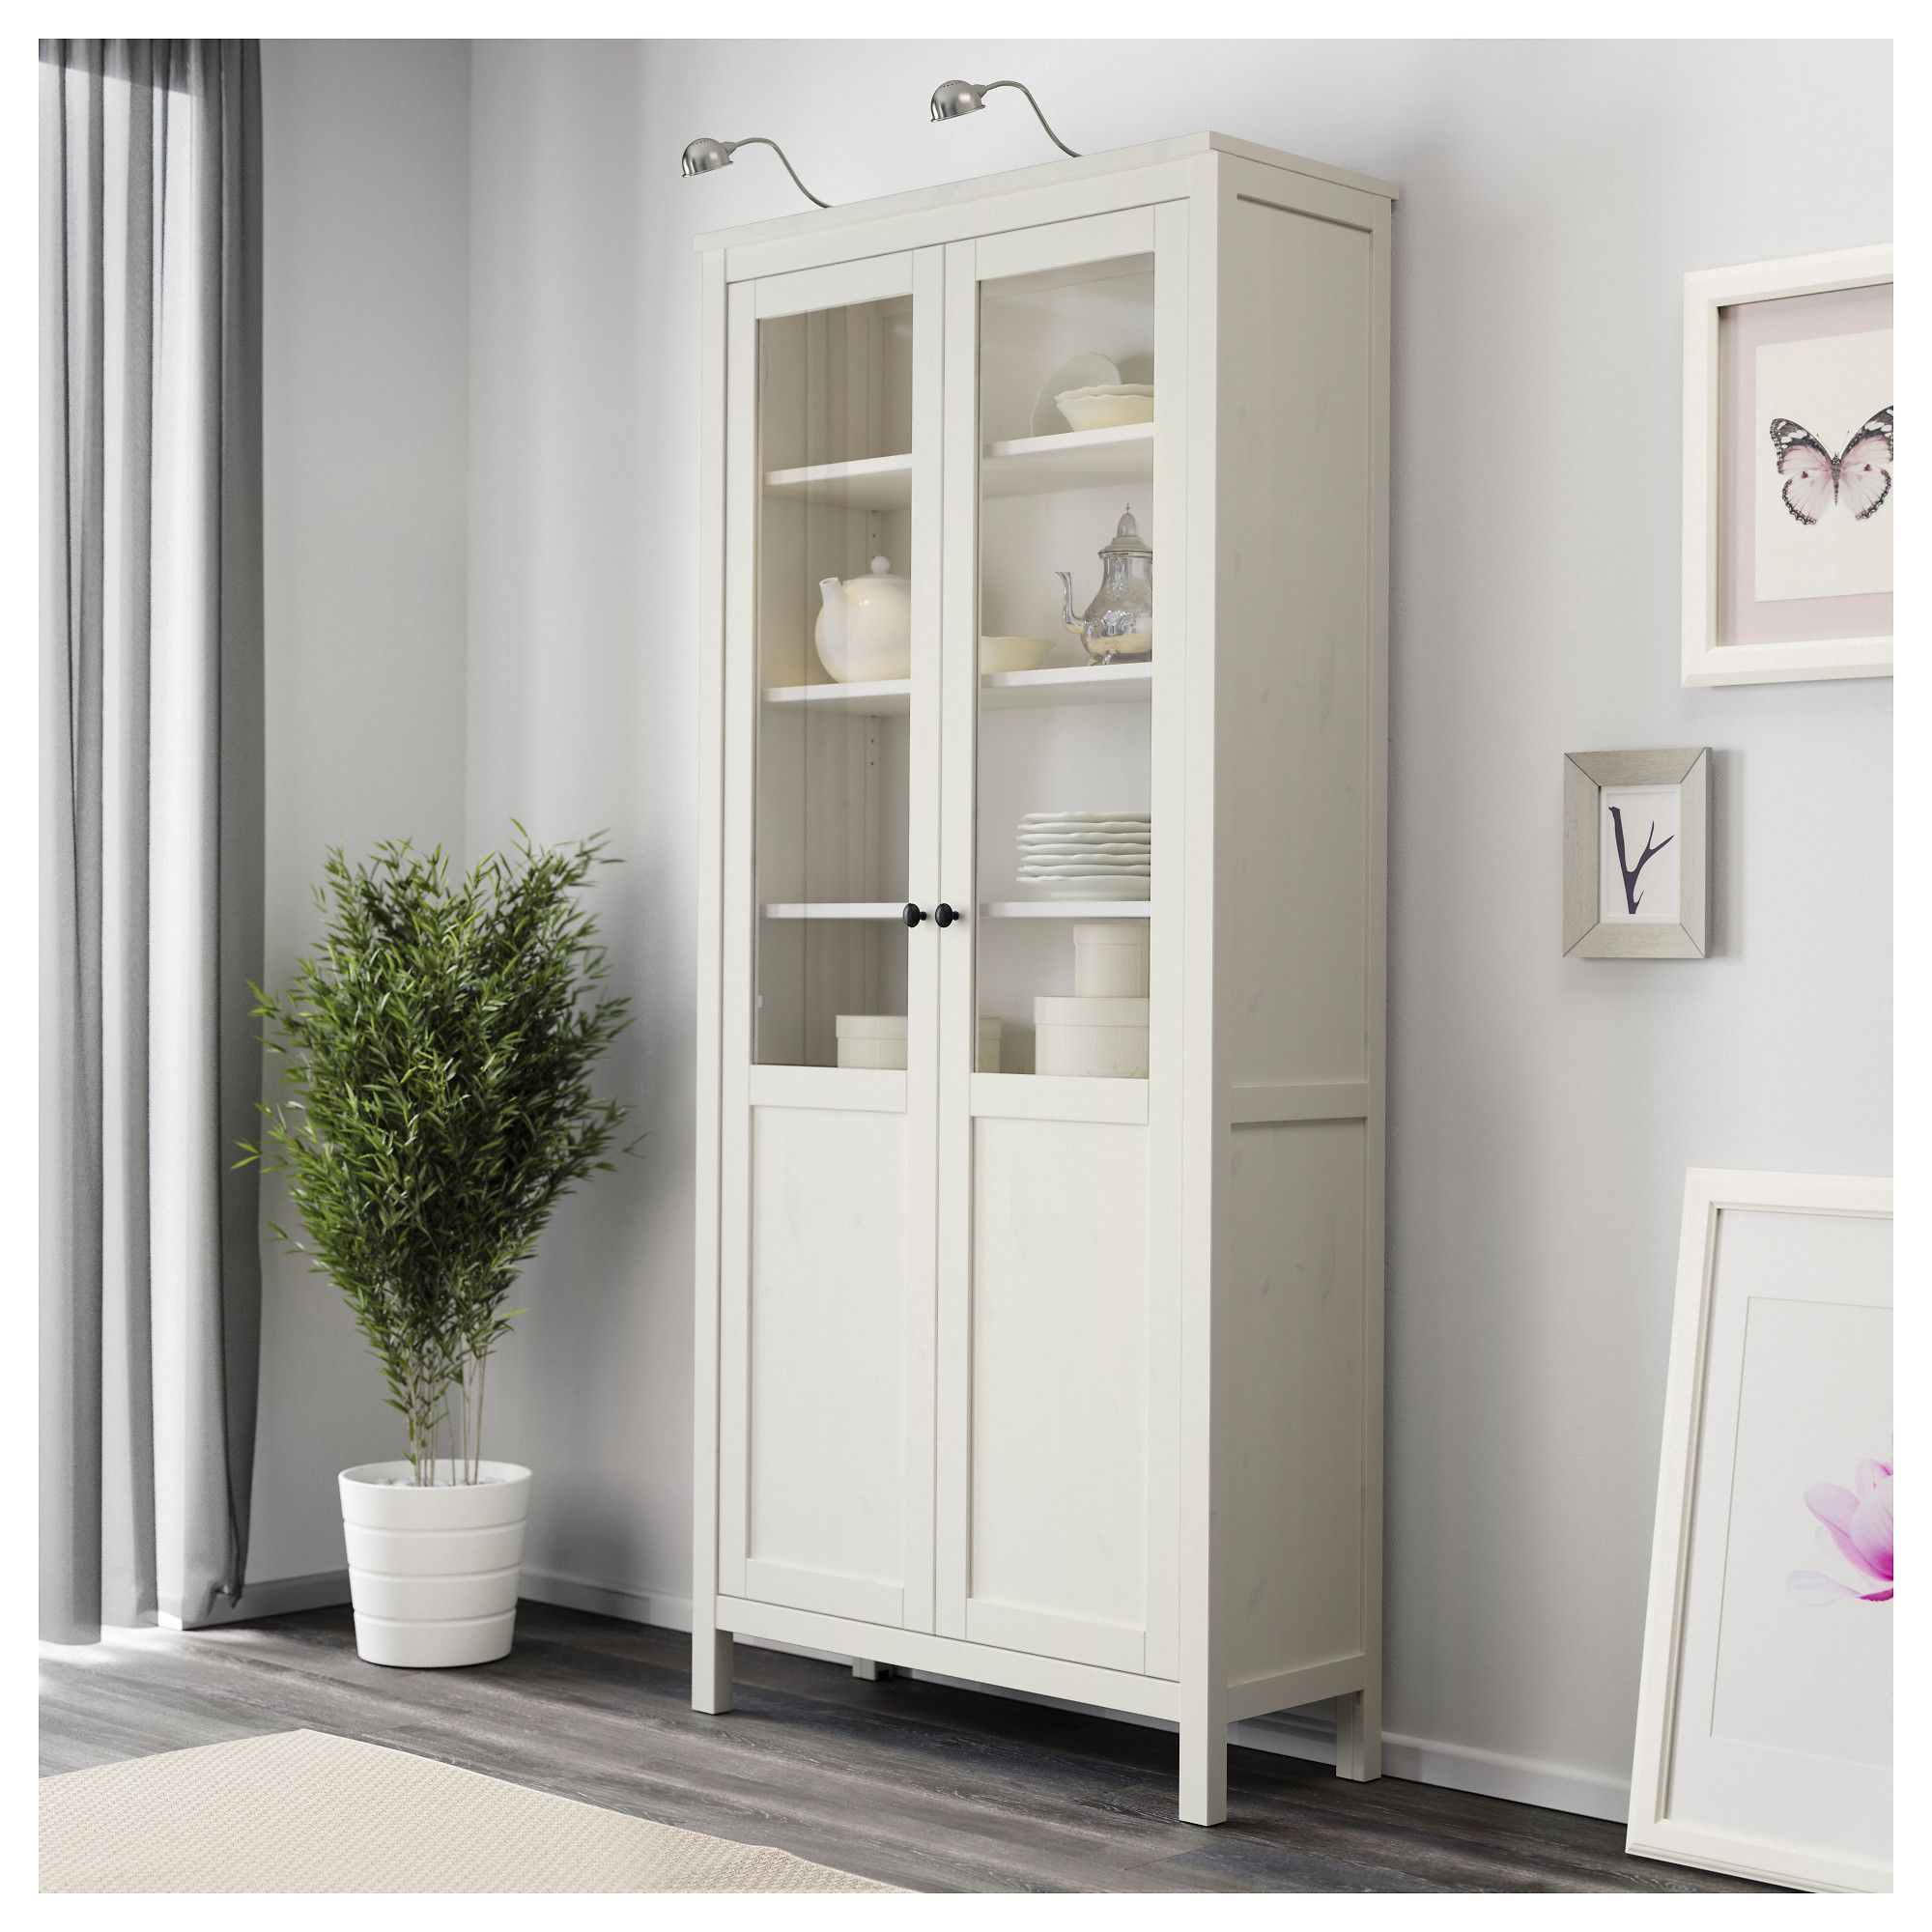 HEMNES Cabinet with panel/glass door, white stain | Pinterest ...